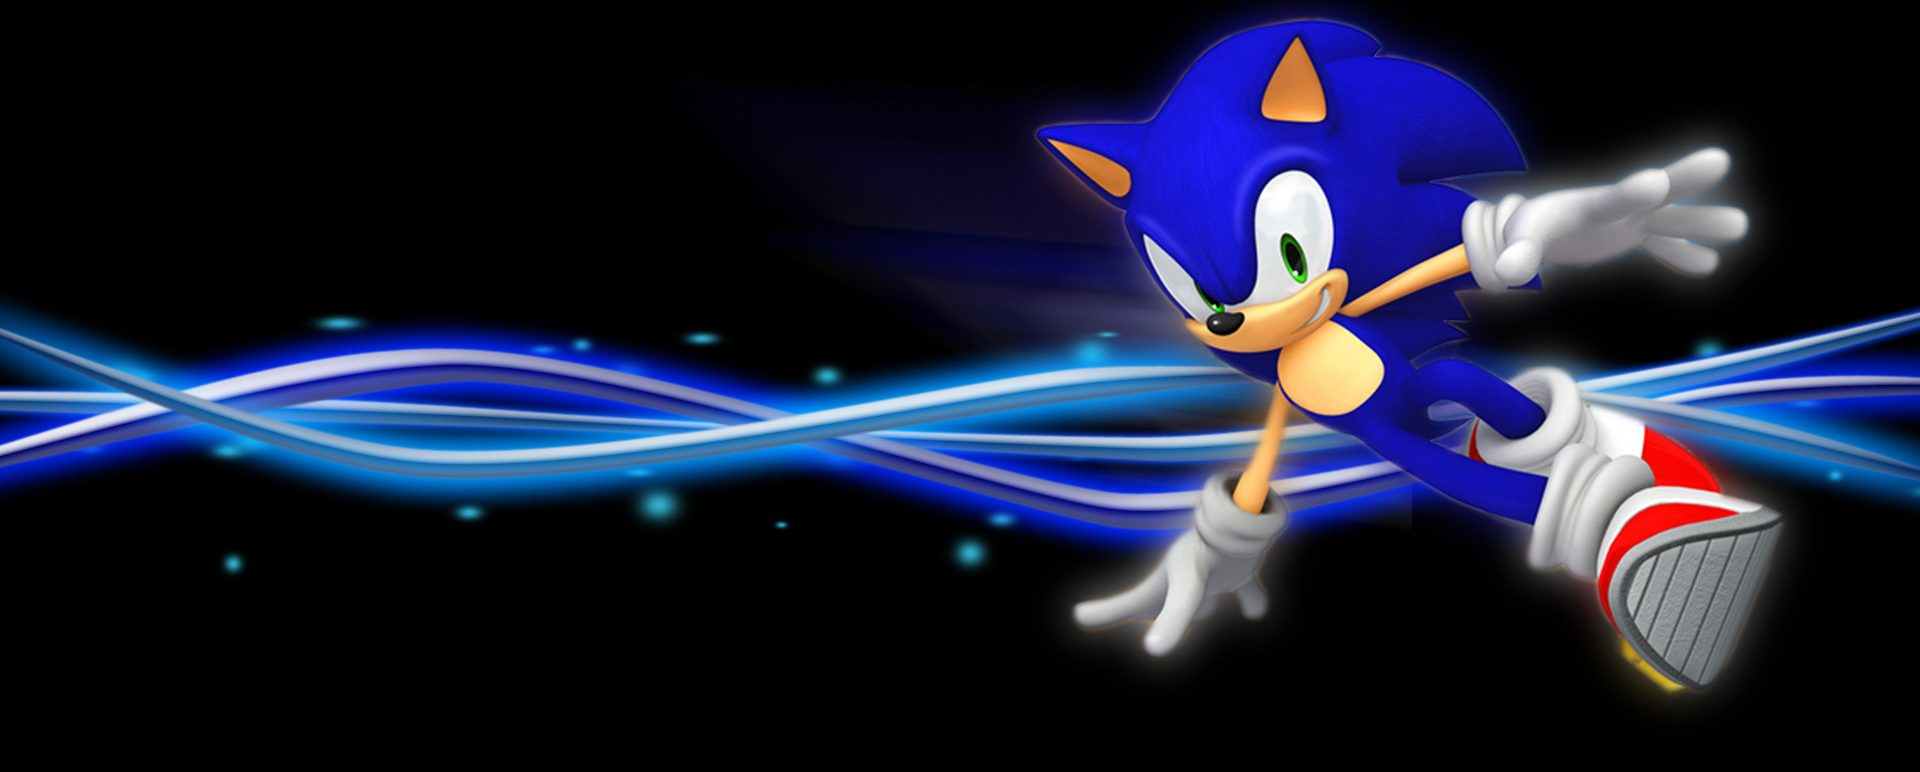 Sonic Hedgehog I Kid You Not The Science Of Parkinson S